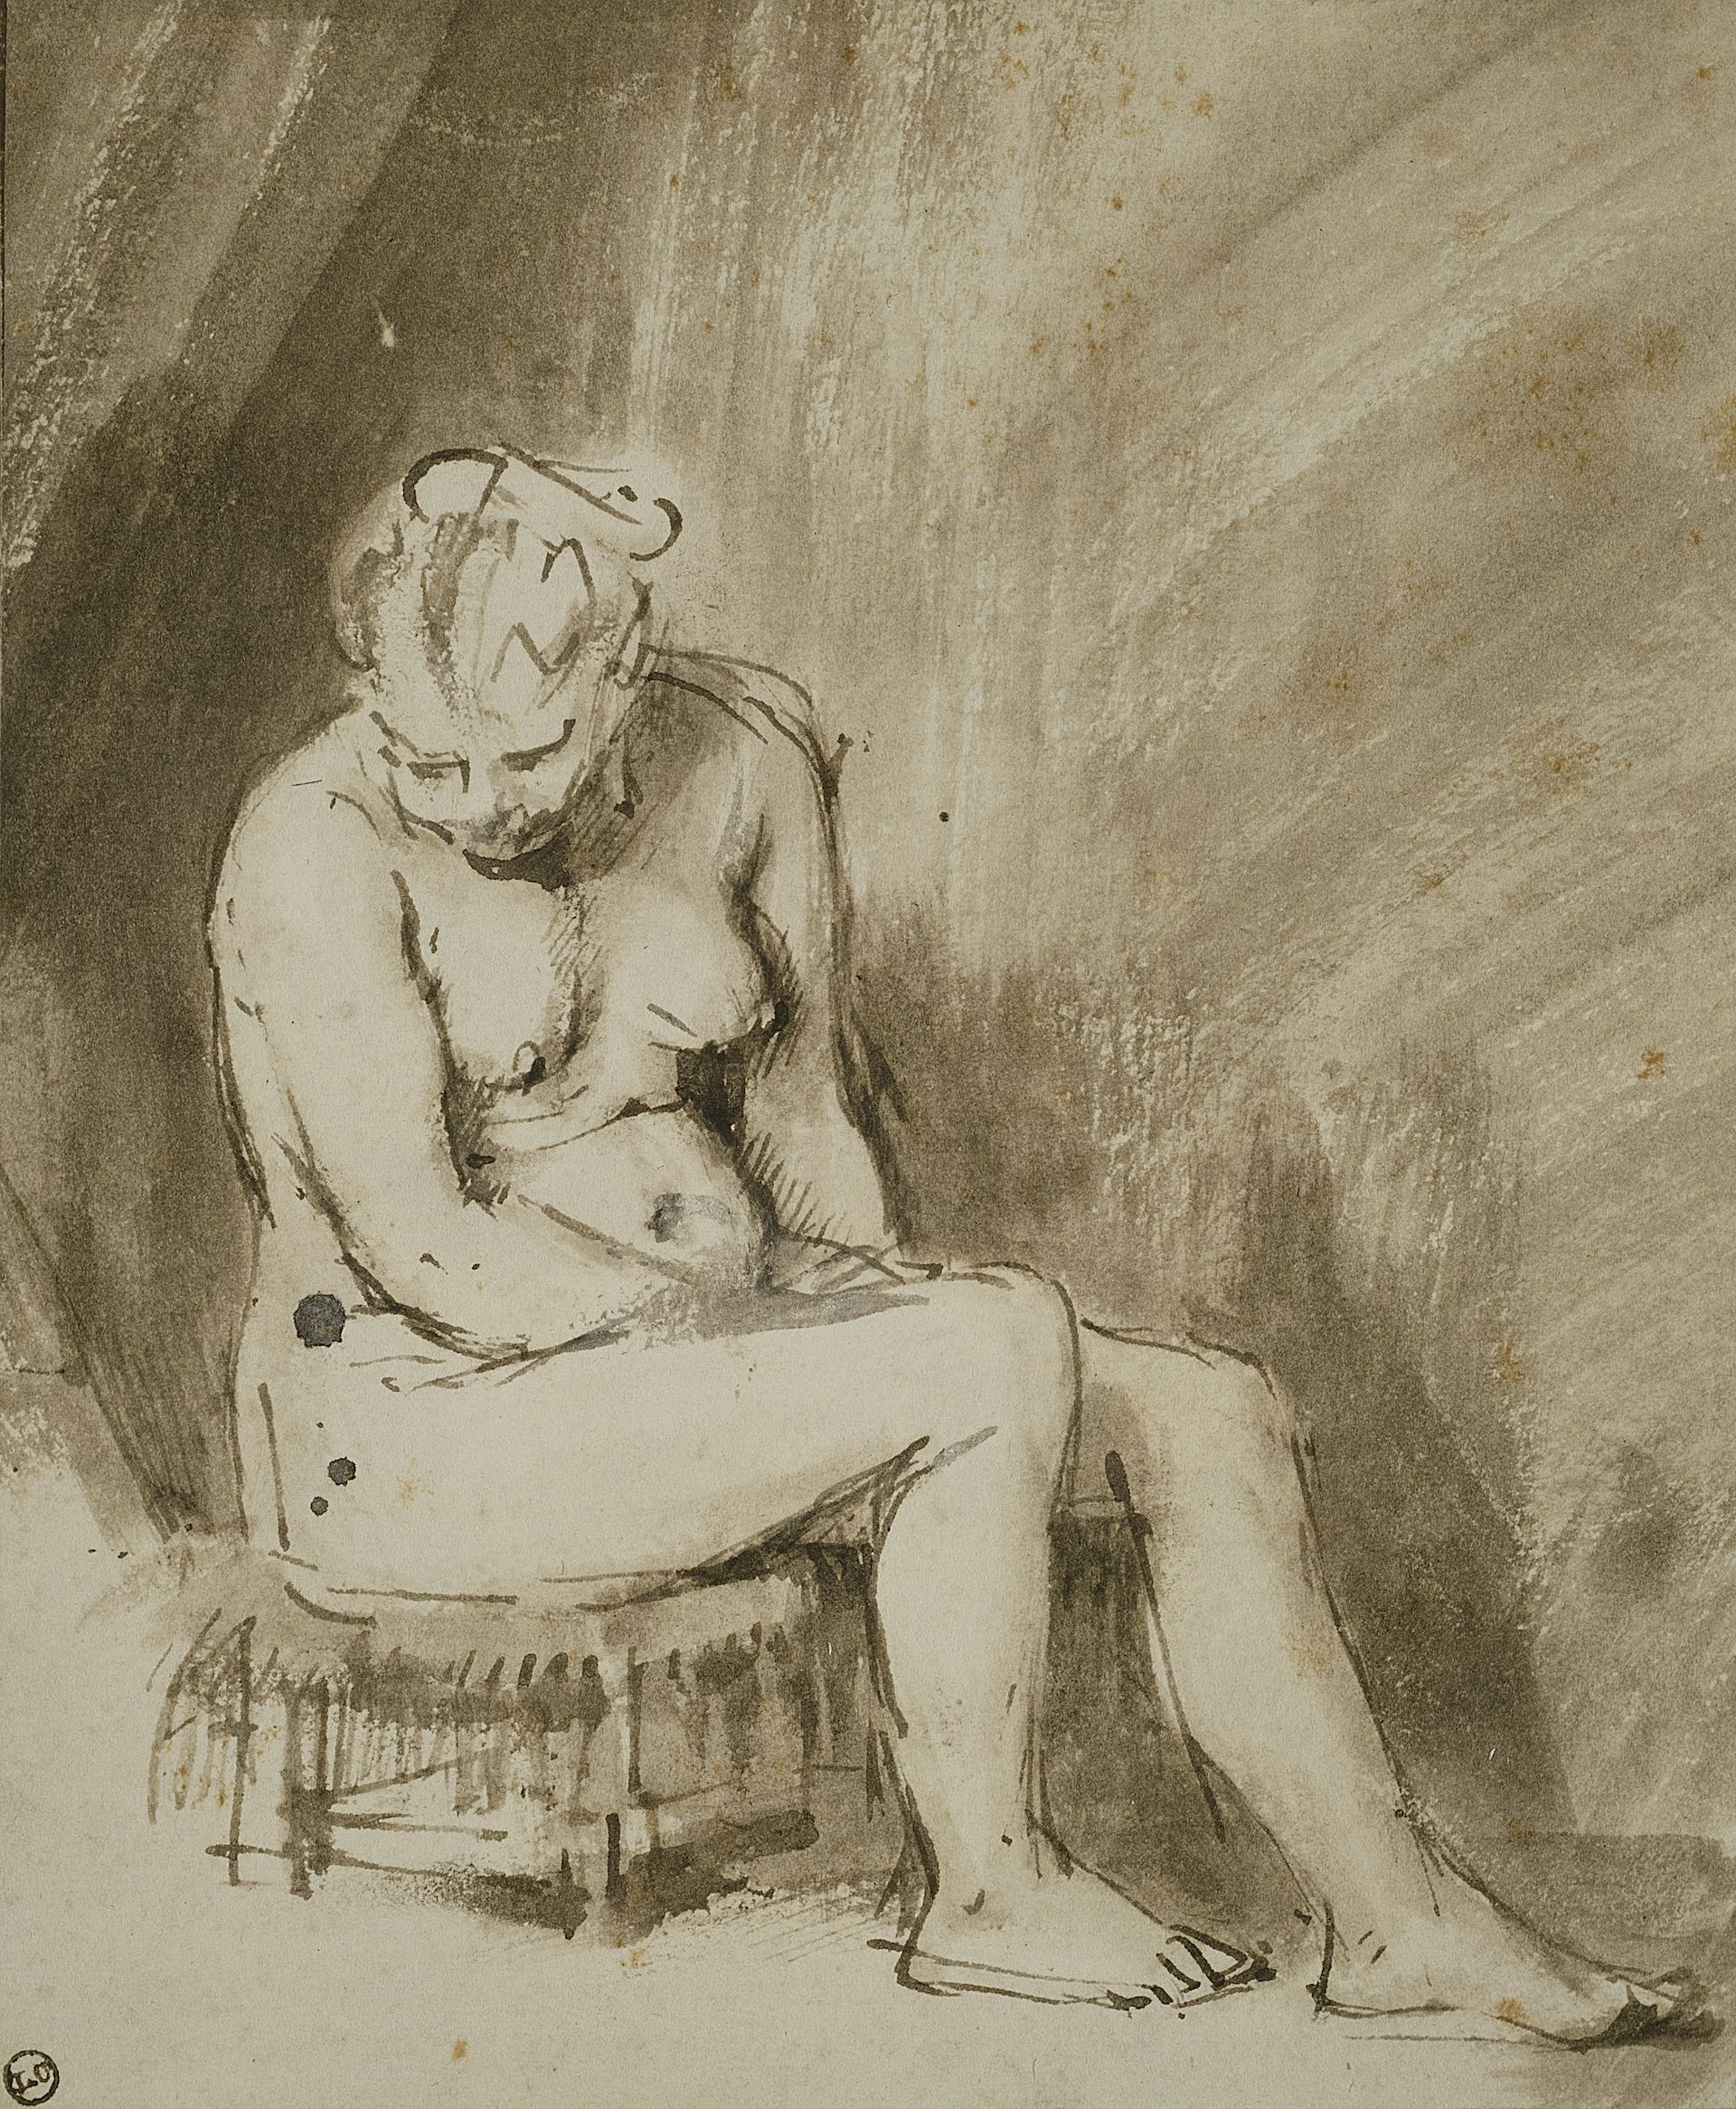 Rembrandt Harmenszoon van RijnDutch, 1606-1669Nude Woman Seated on a Stool, 1654/56Pen and brown ink and brush and brown wash on ivory laid paper, laid down on cream laid card212 x 174 mmClarence Buckingham Collection1953.38The Art Institute of Chicago